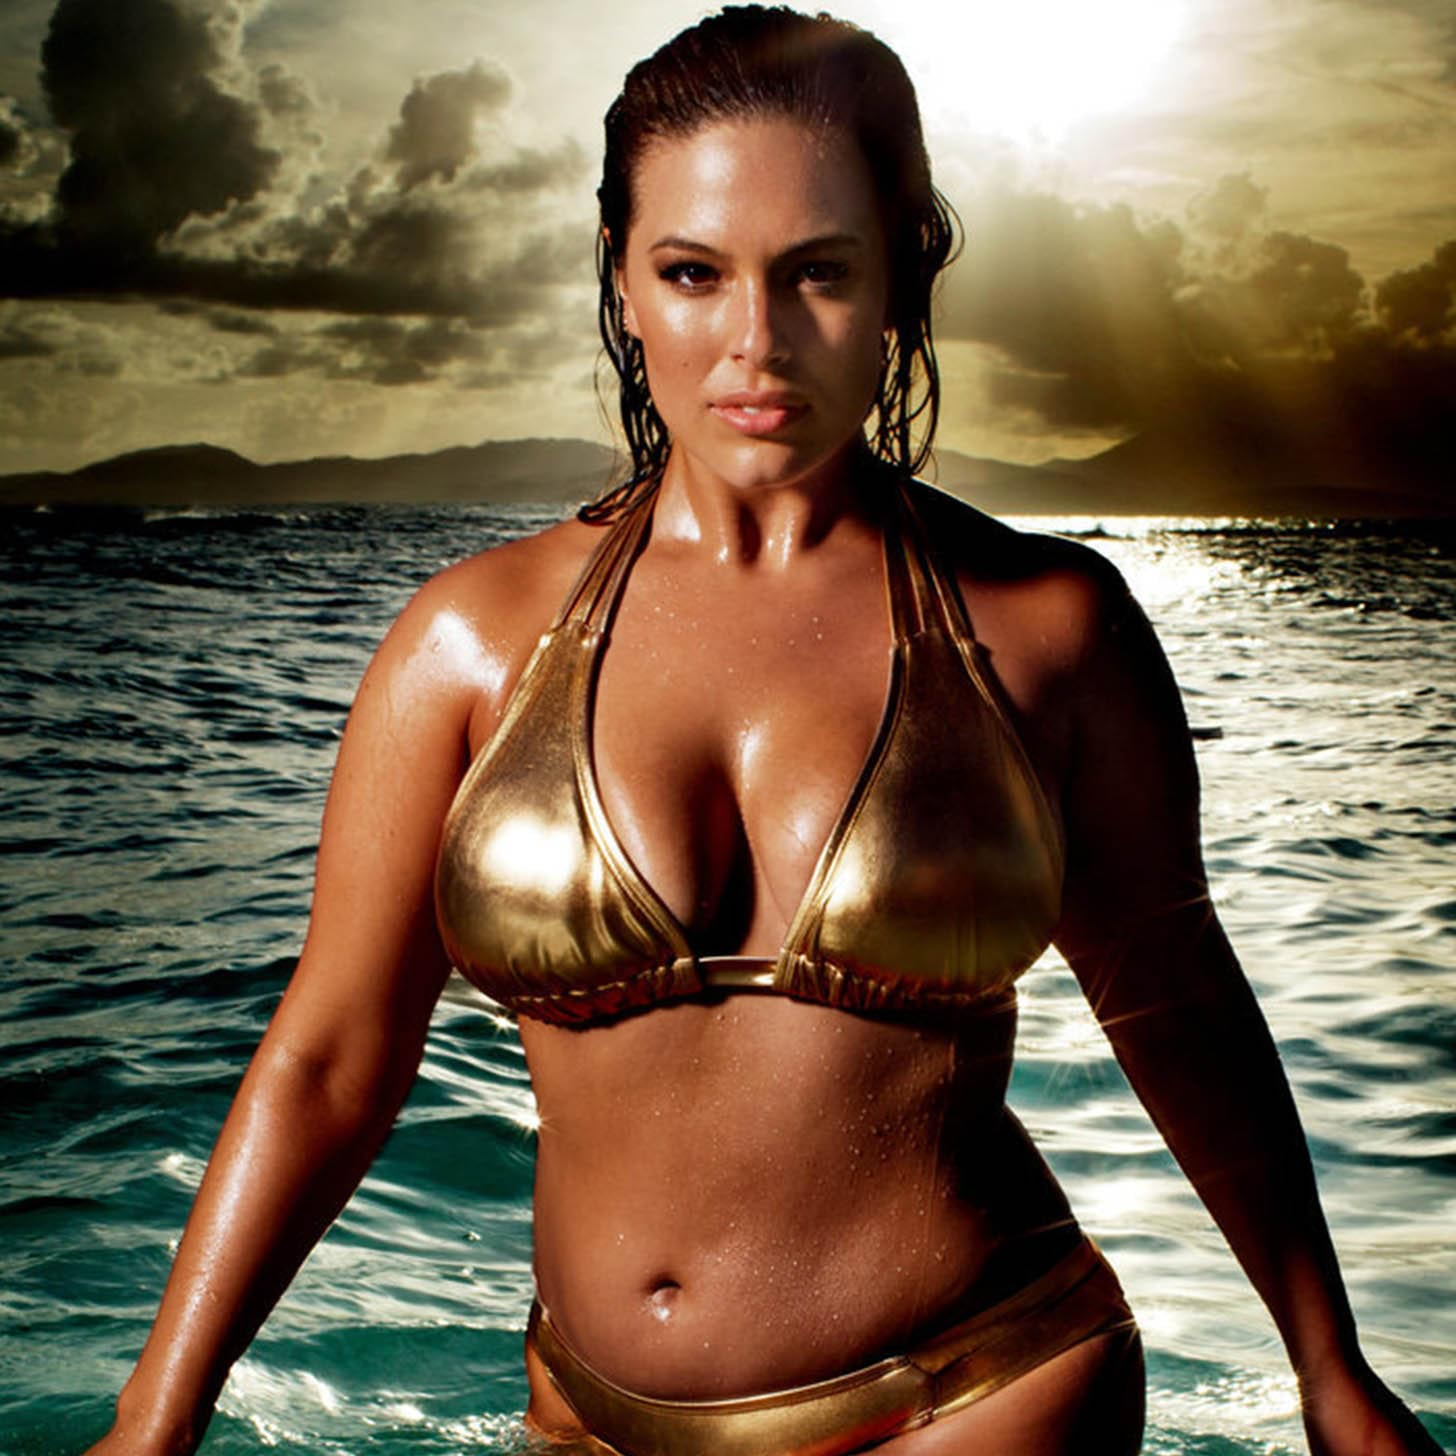 آشلي غراهام Ashley Graham